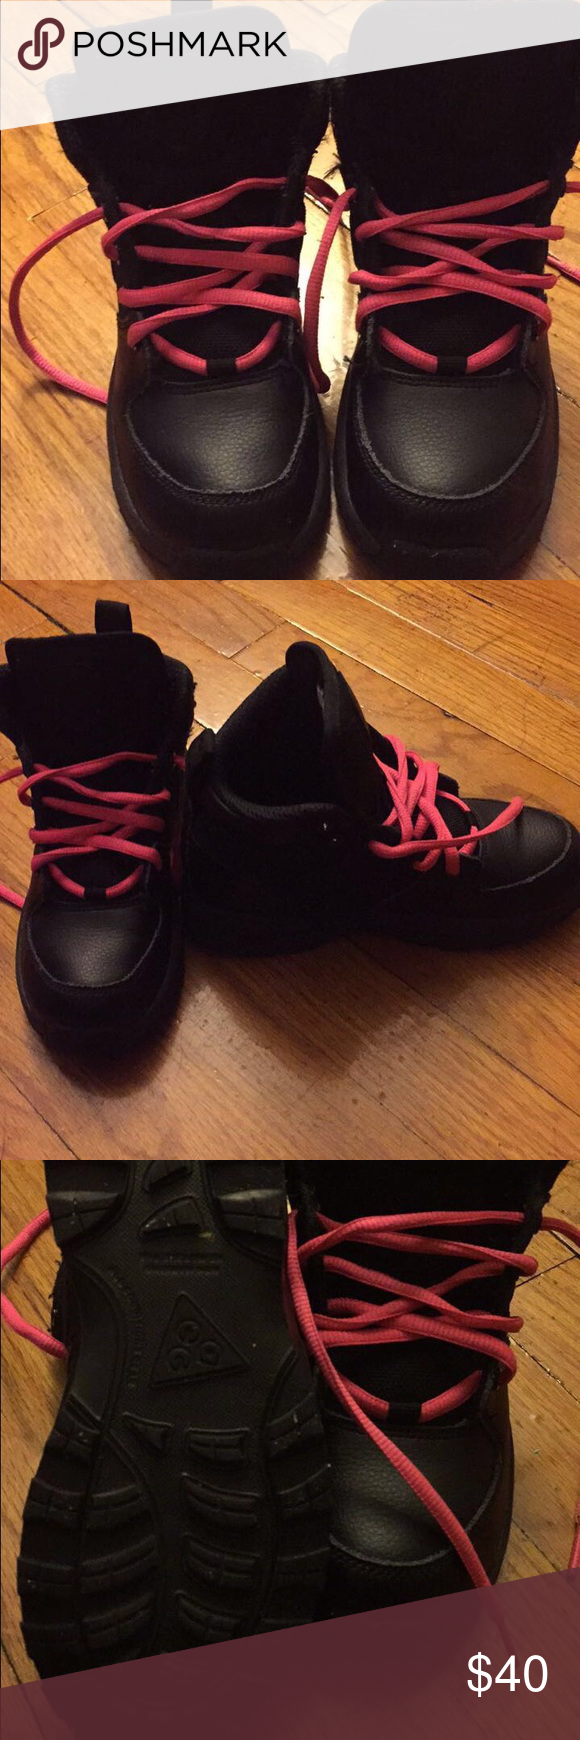 Nike ACG These are boy boots but I put pink shoe strings so my daughter could wear them 😊😊 She only wore these a handful of times. Great Condition. Nike Shoes Boots